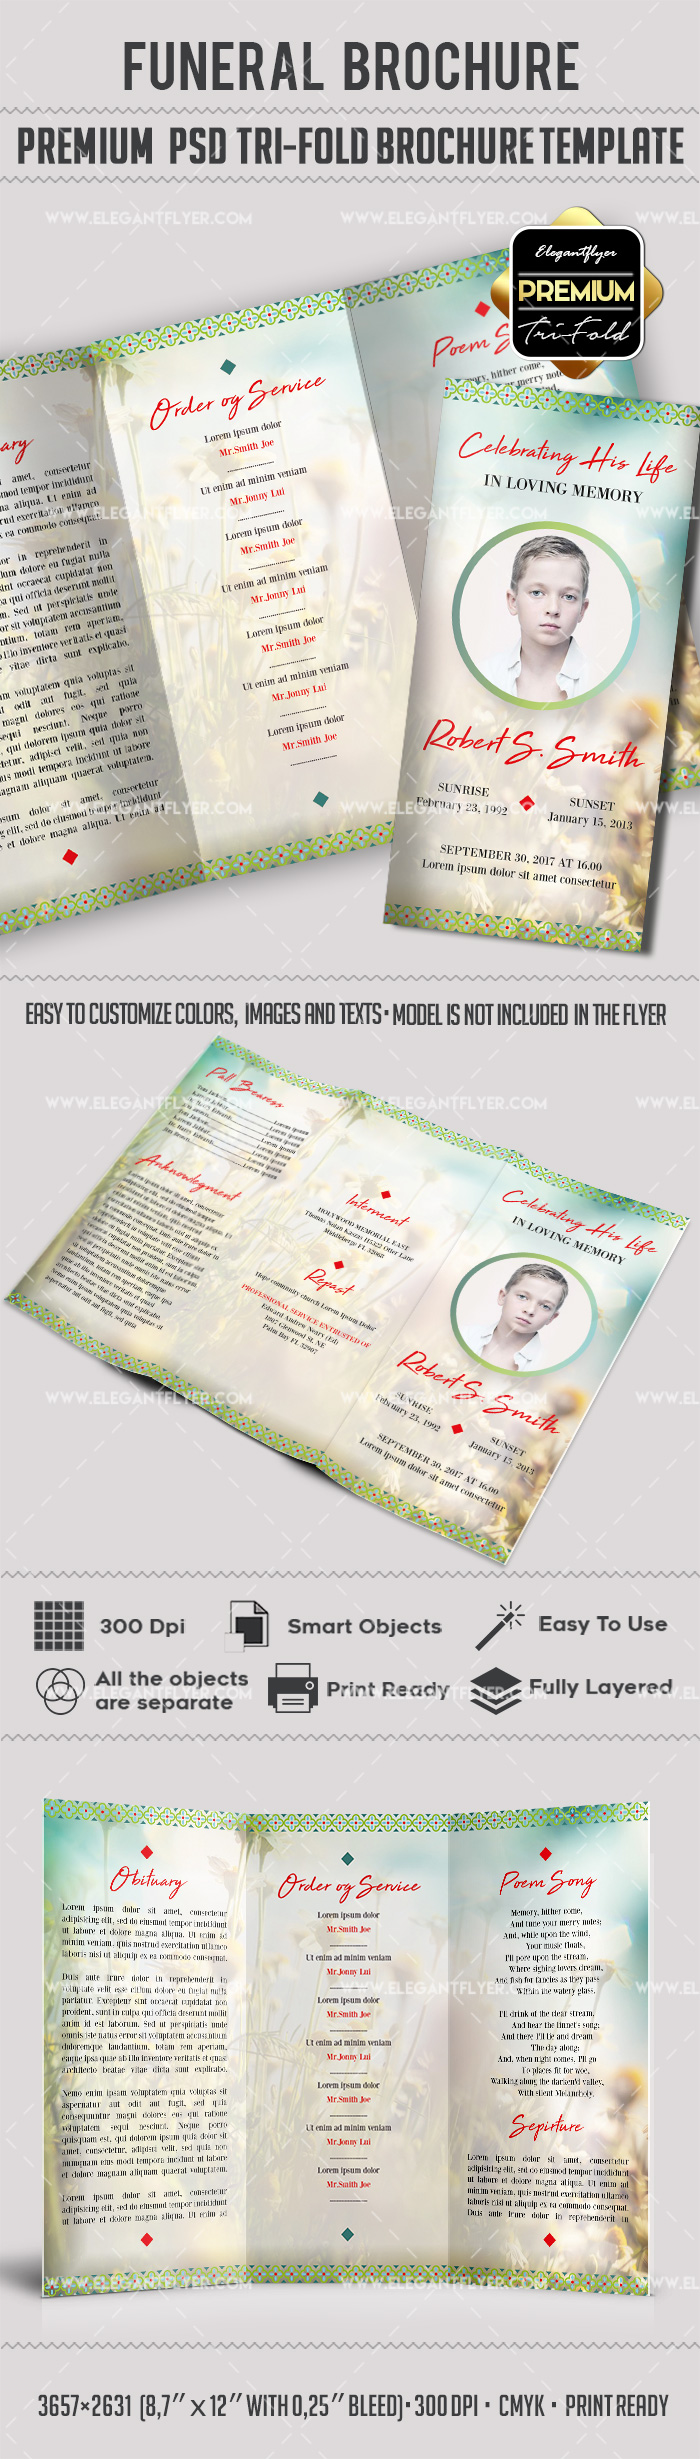 Funeral brochure template by elegantflyer for Funeral brochure templates free